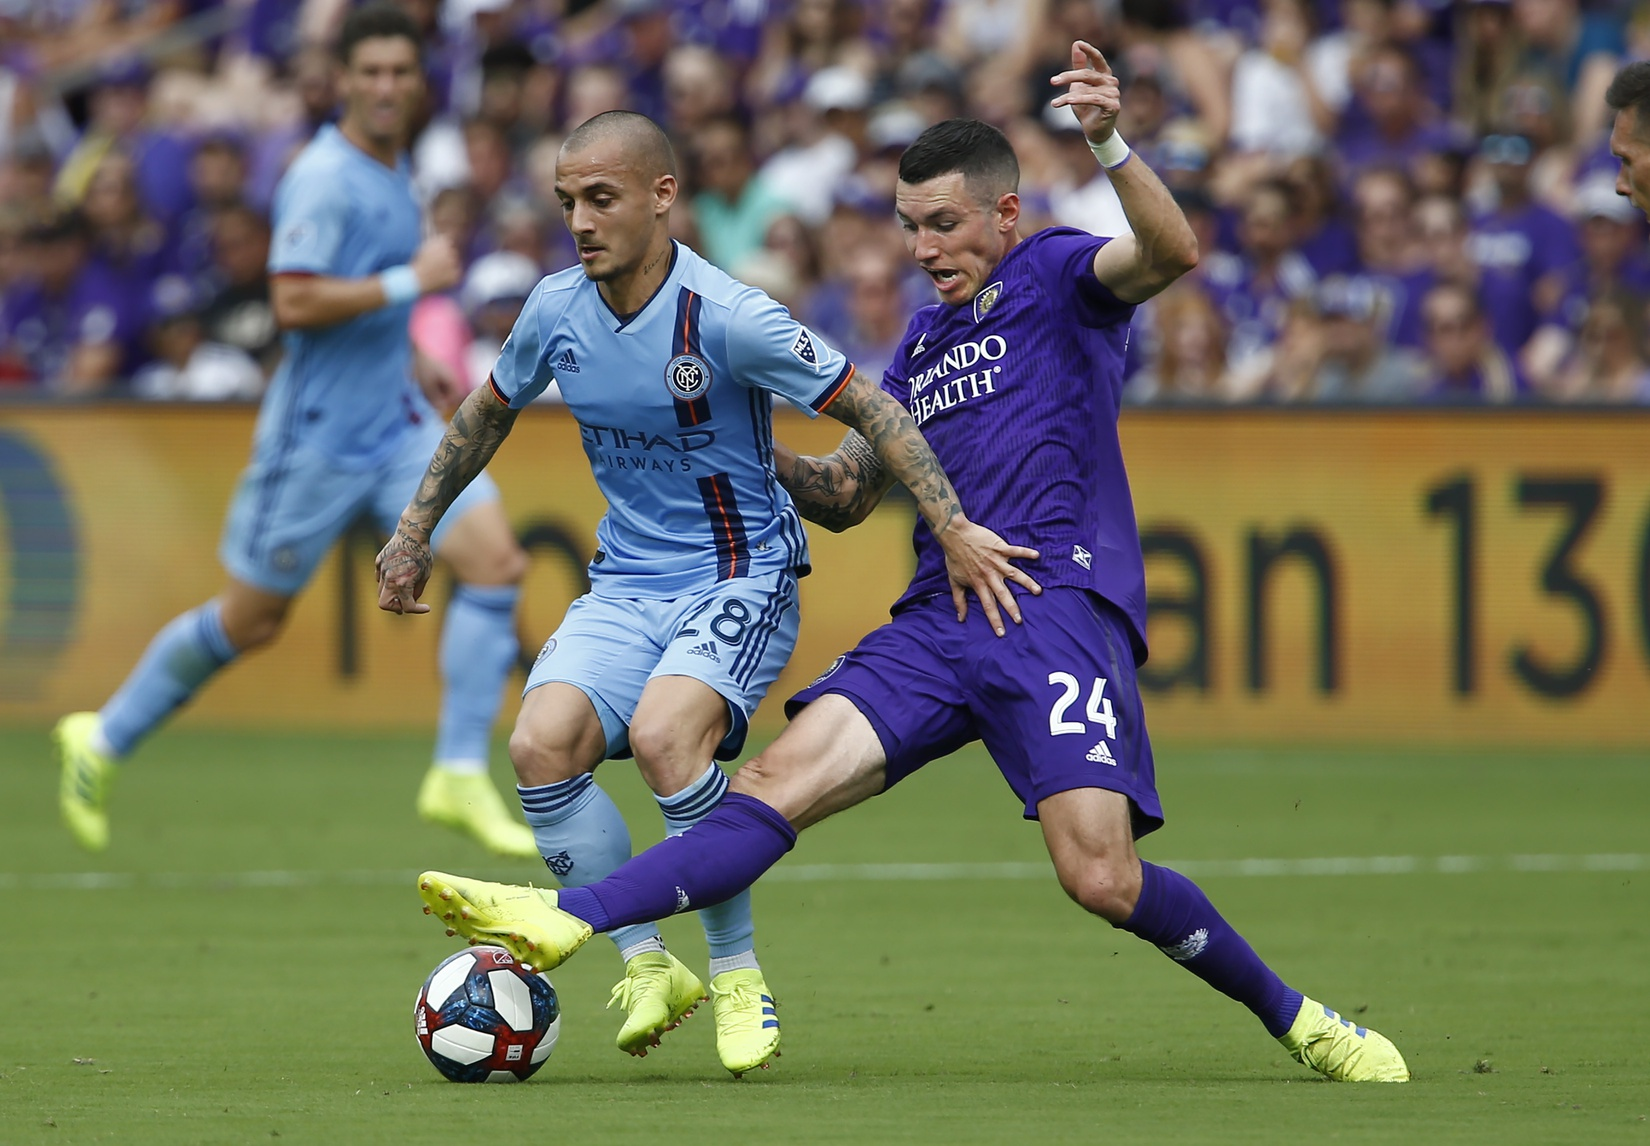 Mar 2, 2019; Orlando, FL, USA; Orlando City FC defender Kyle Smith (24) and New York City FC midfielder Alexandru Mitrita (28) battle for possession during the first half of a soccer match at Orlando City Stadium. Mandatory Credit: Reinhold Matay-USA TODAY Sports